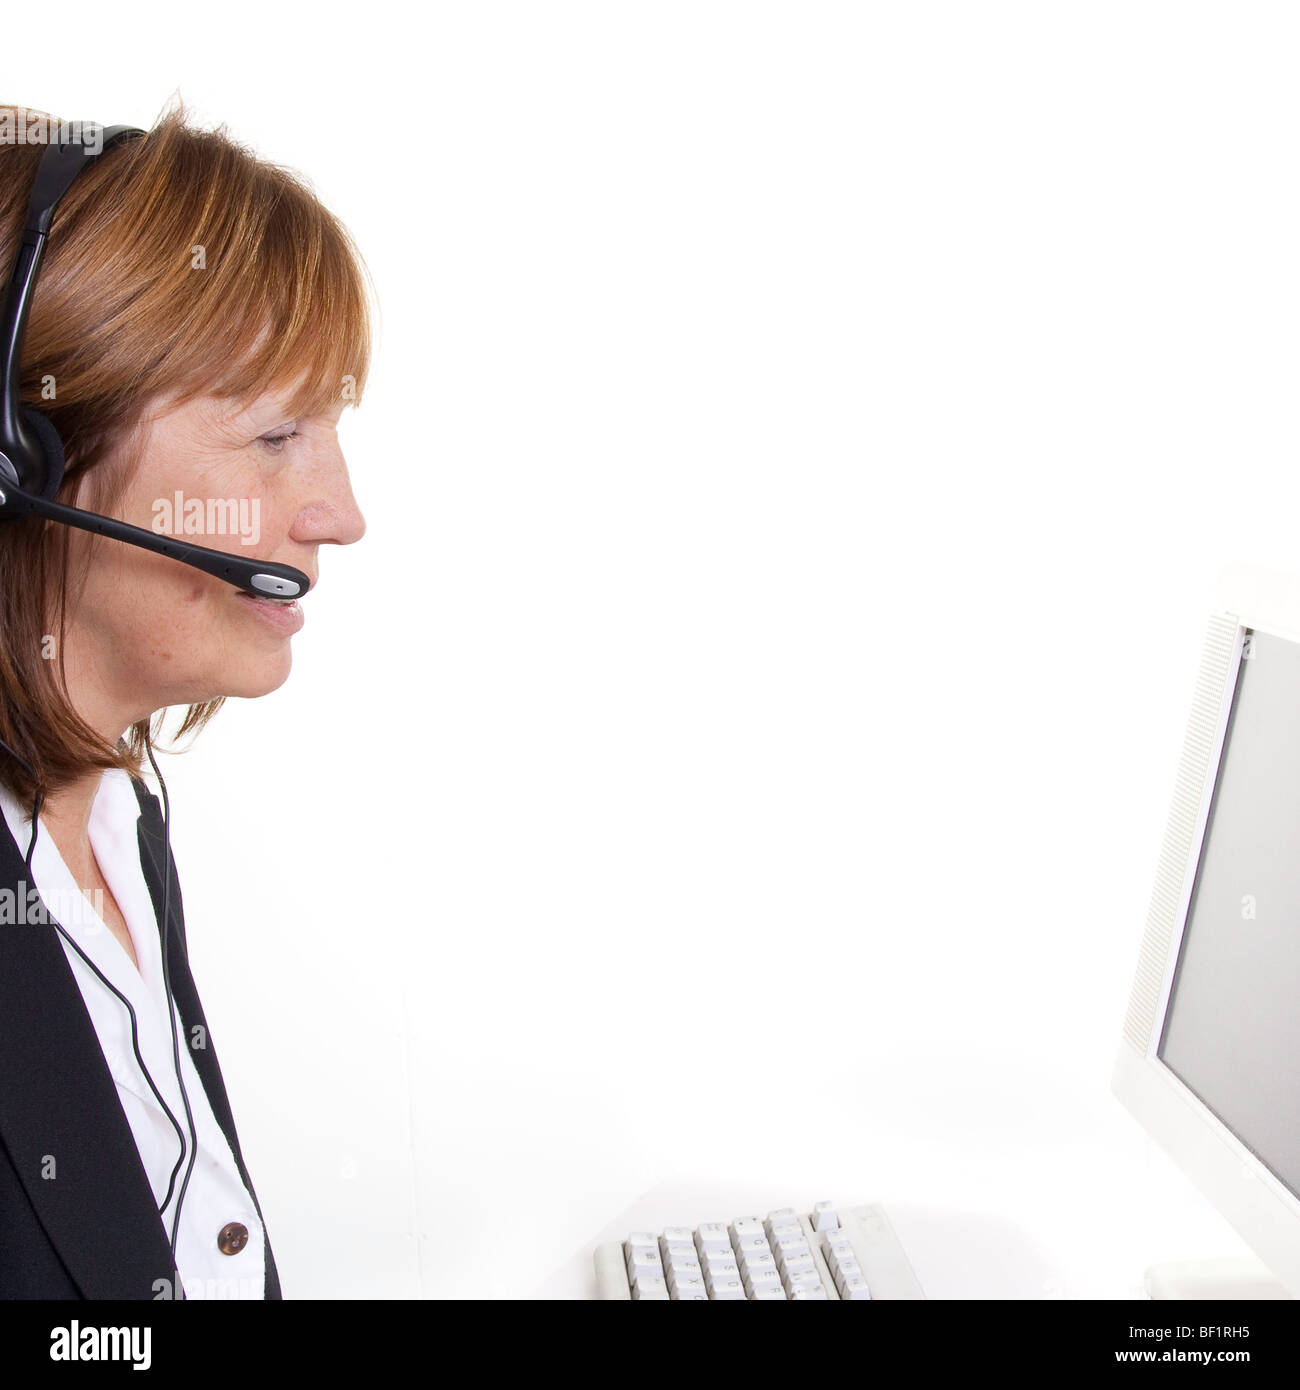 Older Senior Woman In Call Centre Or Business Situation   Stock Image